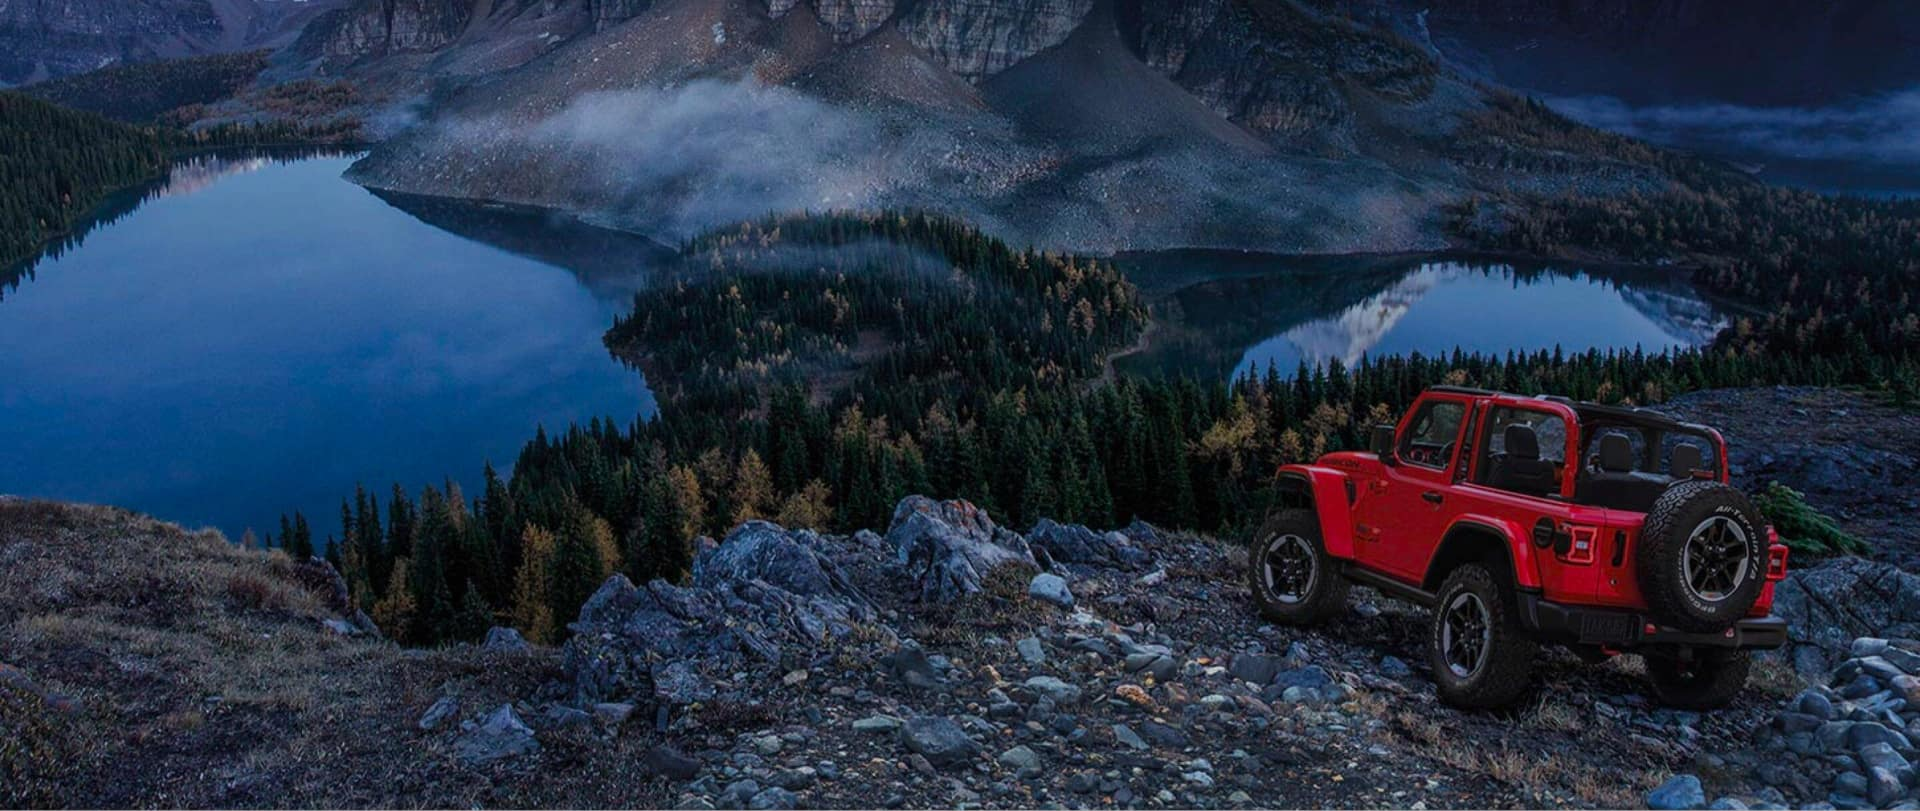 Jeep offroad overlooking lake